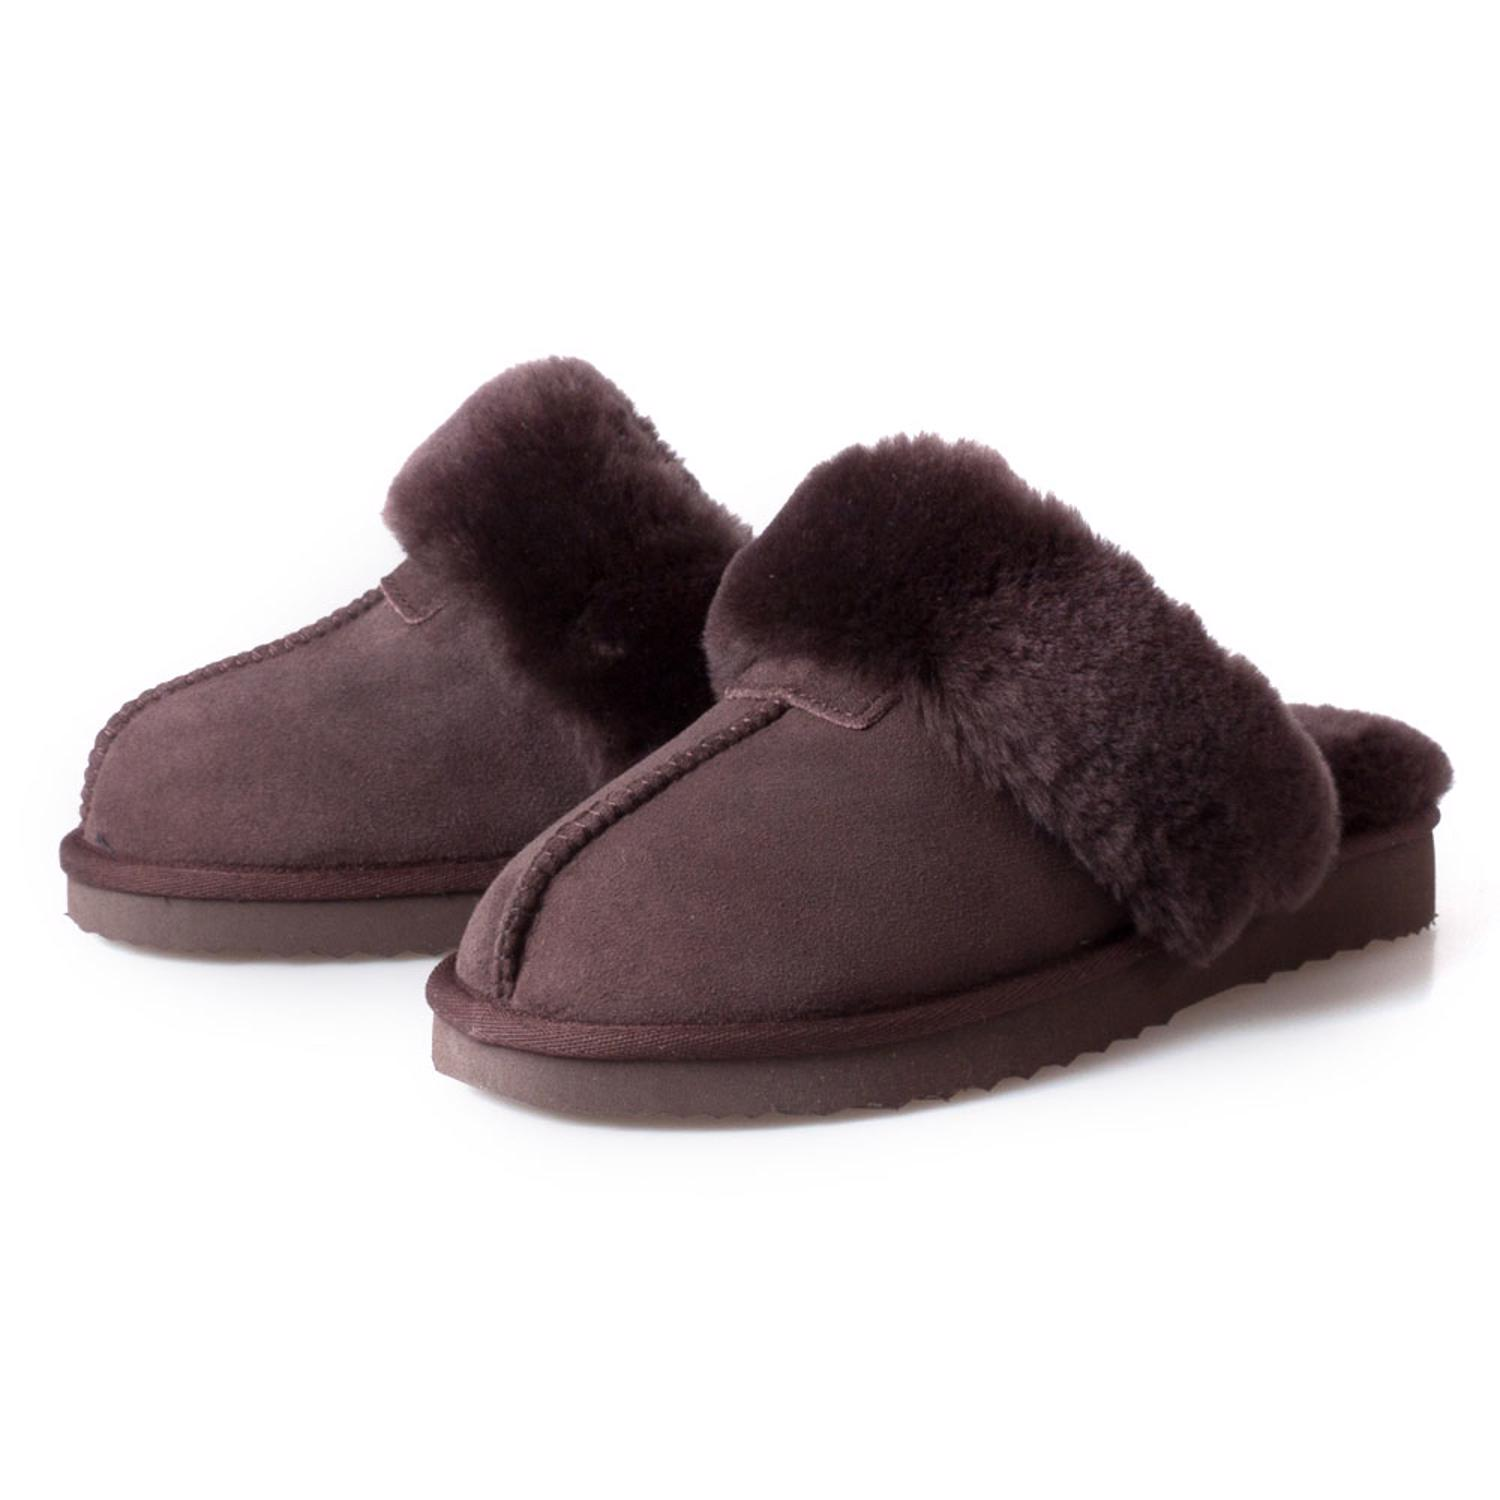 Chaussures Mephisto Pour Femmes VC4Xoubha